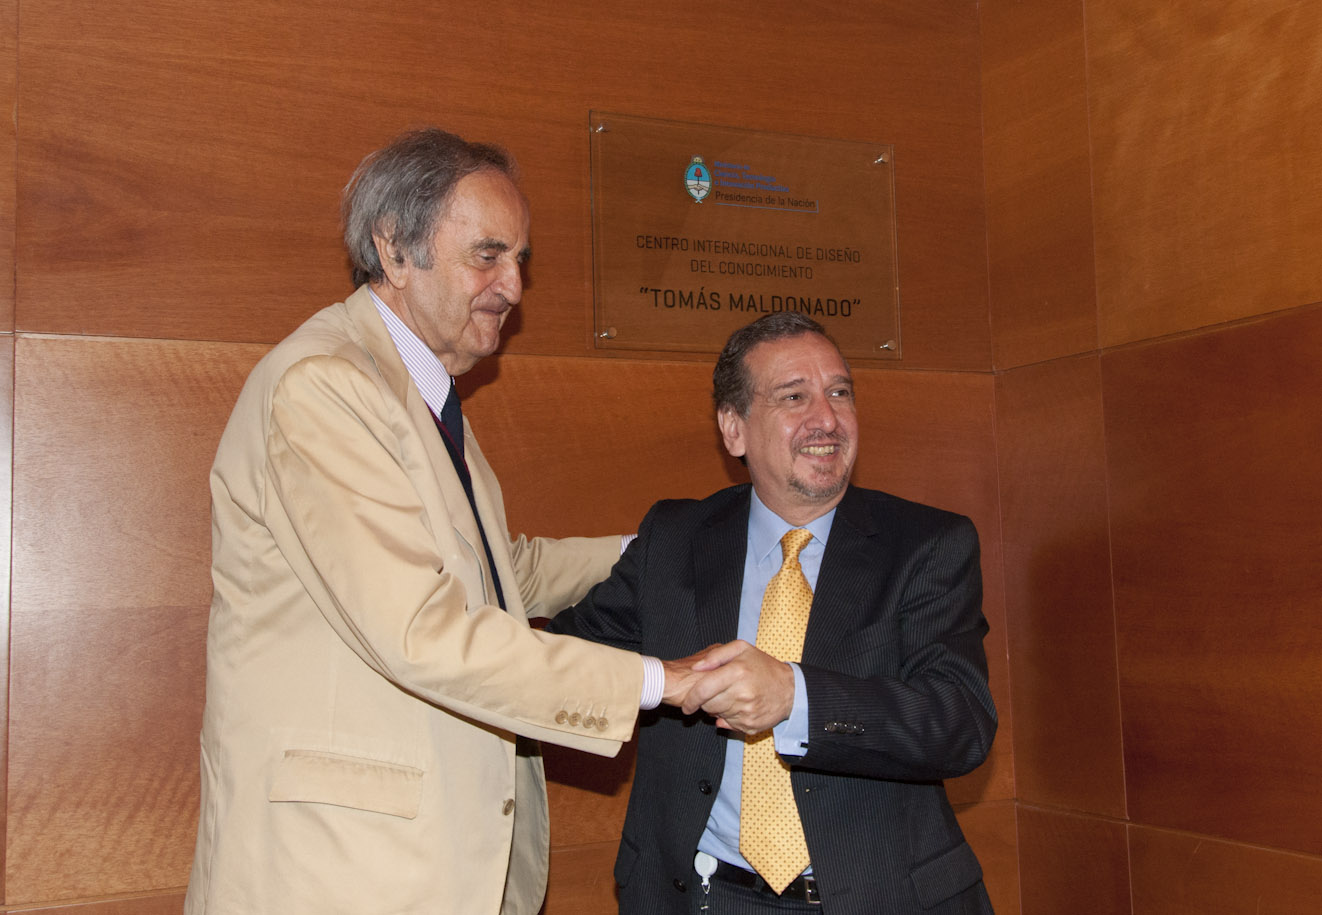 Barañao and Maldonado together in a master conference